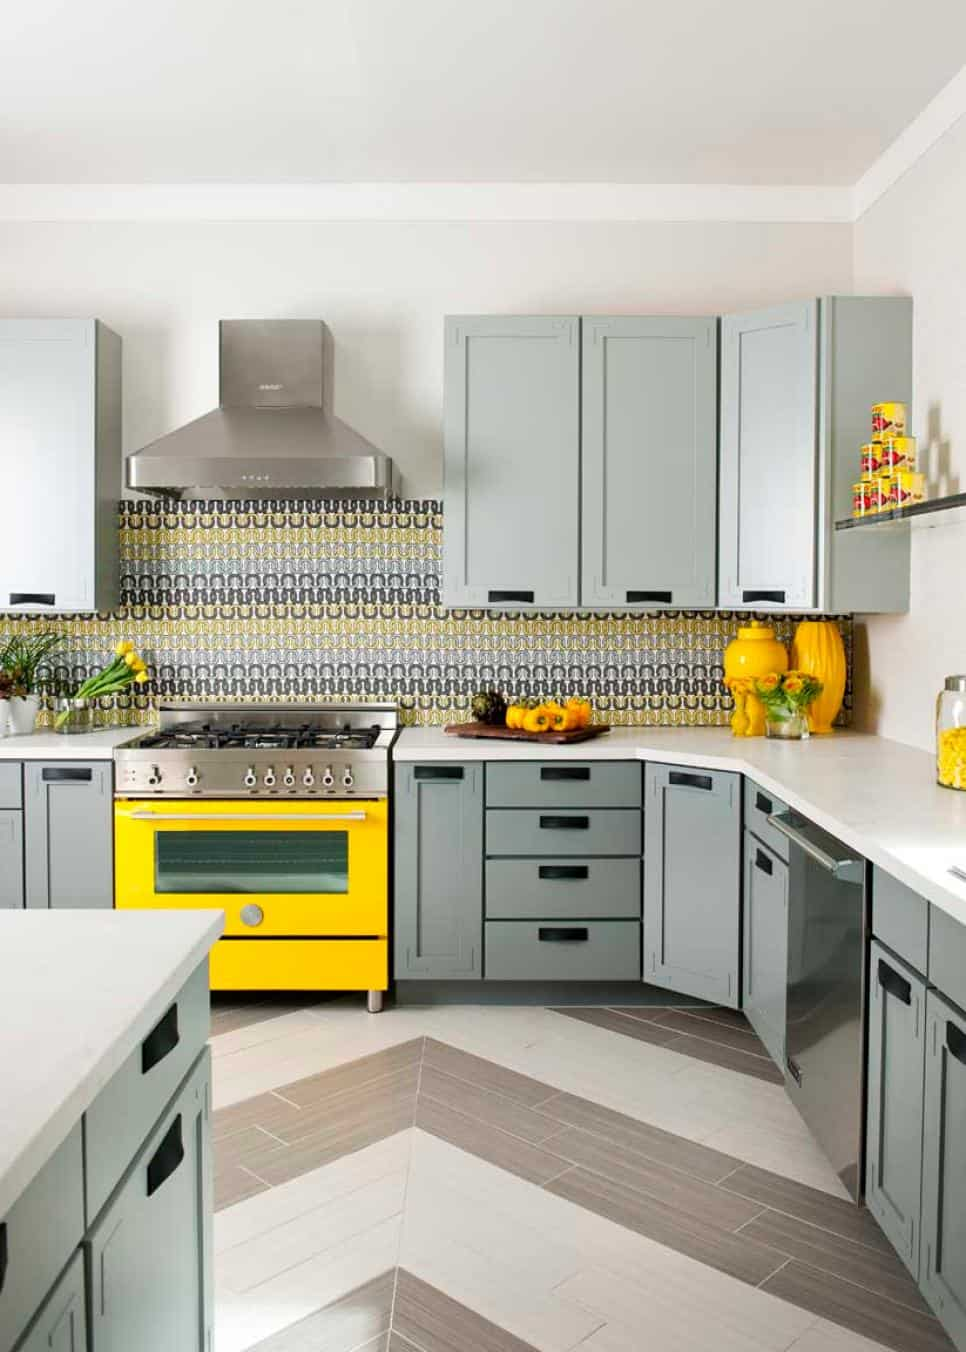 Eye-catchy modern kitchen backsplash by Denise McGaha